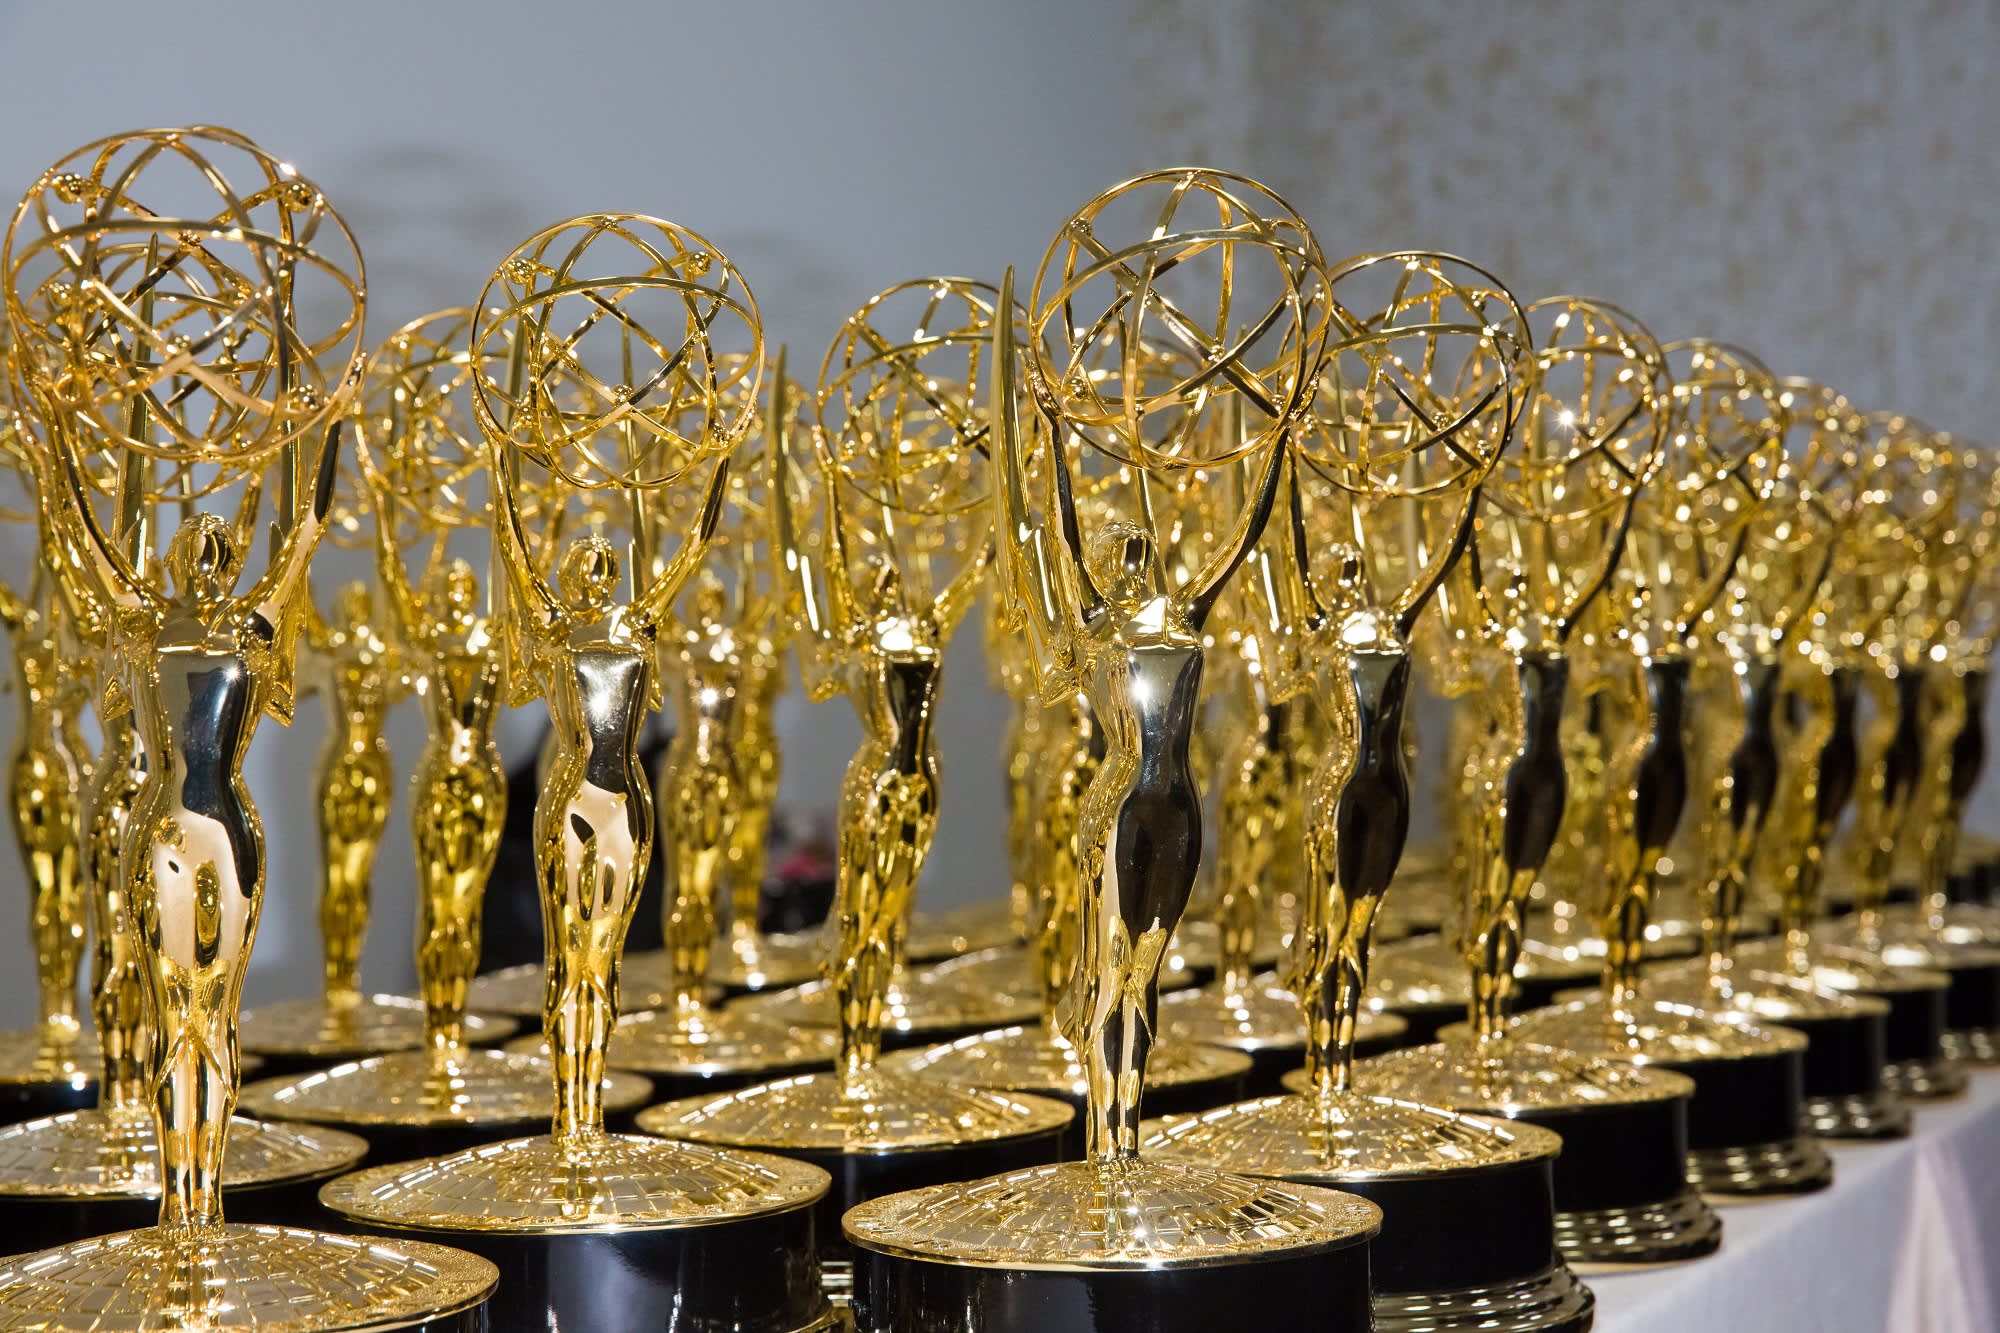 Emmys 2020: The complete list of winners and nominees